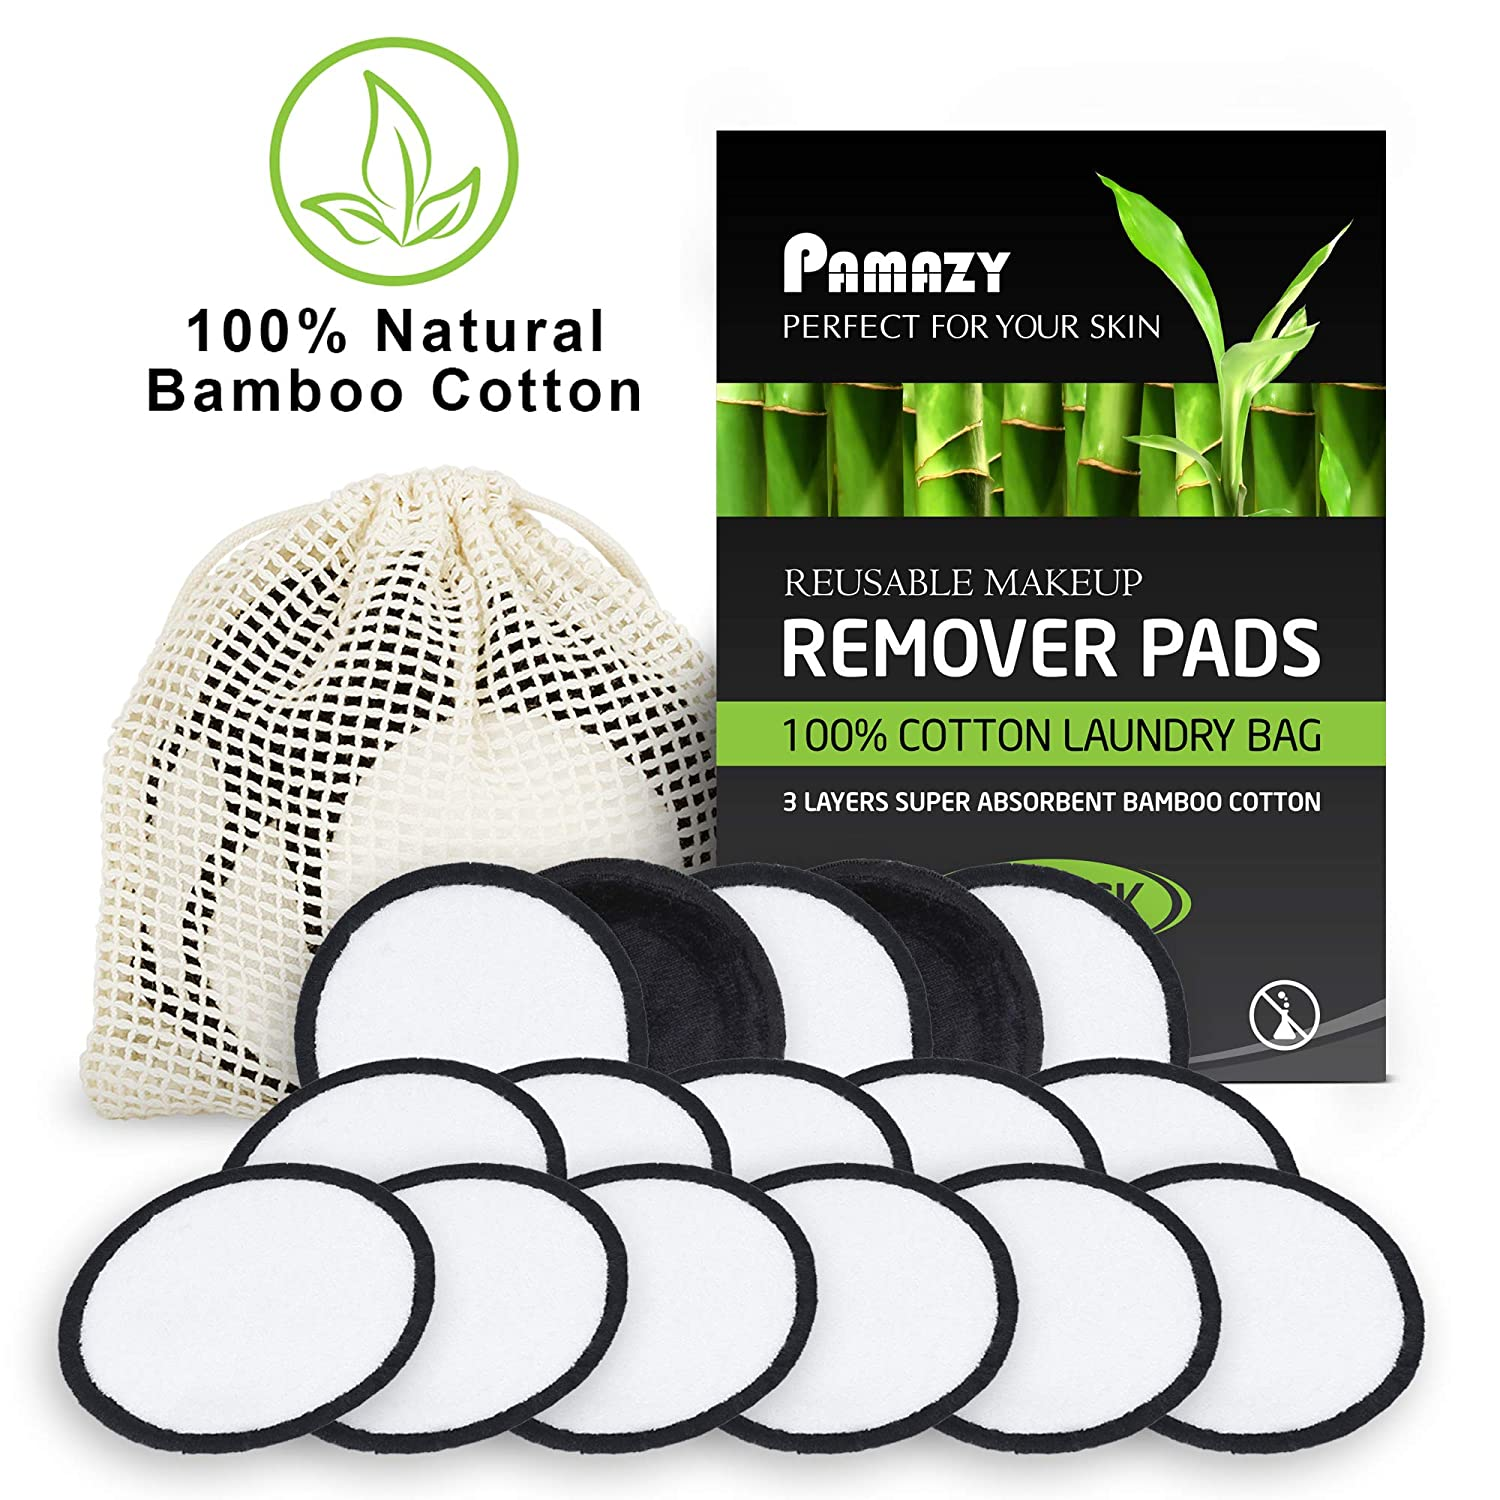 LUXURY Reusable Makeup Remover Pads by PAMAZY- 20 Pack With 100% Cotton Laundry Bag - 3 Layers of Natural Bamboo Fabric - Two Tone Microfiber - Washable and Eco-Friendly (black and white)